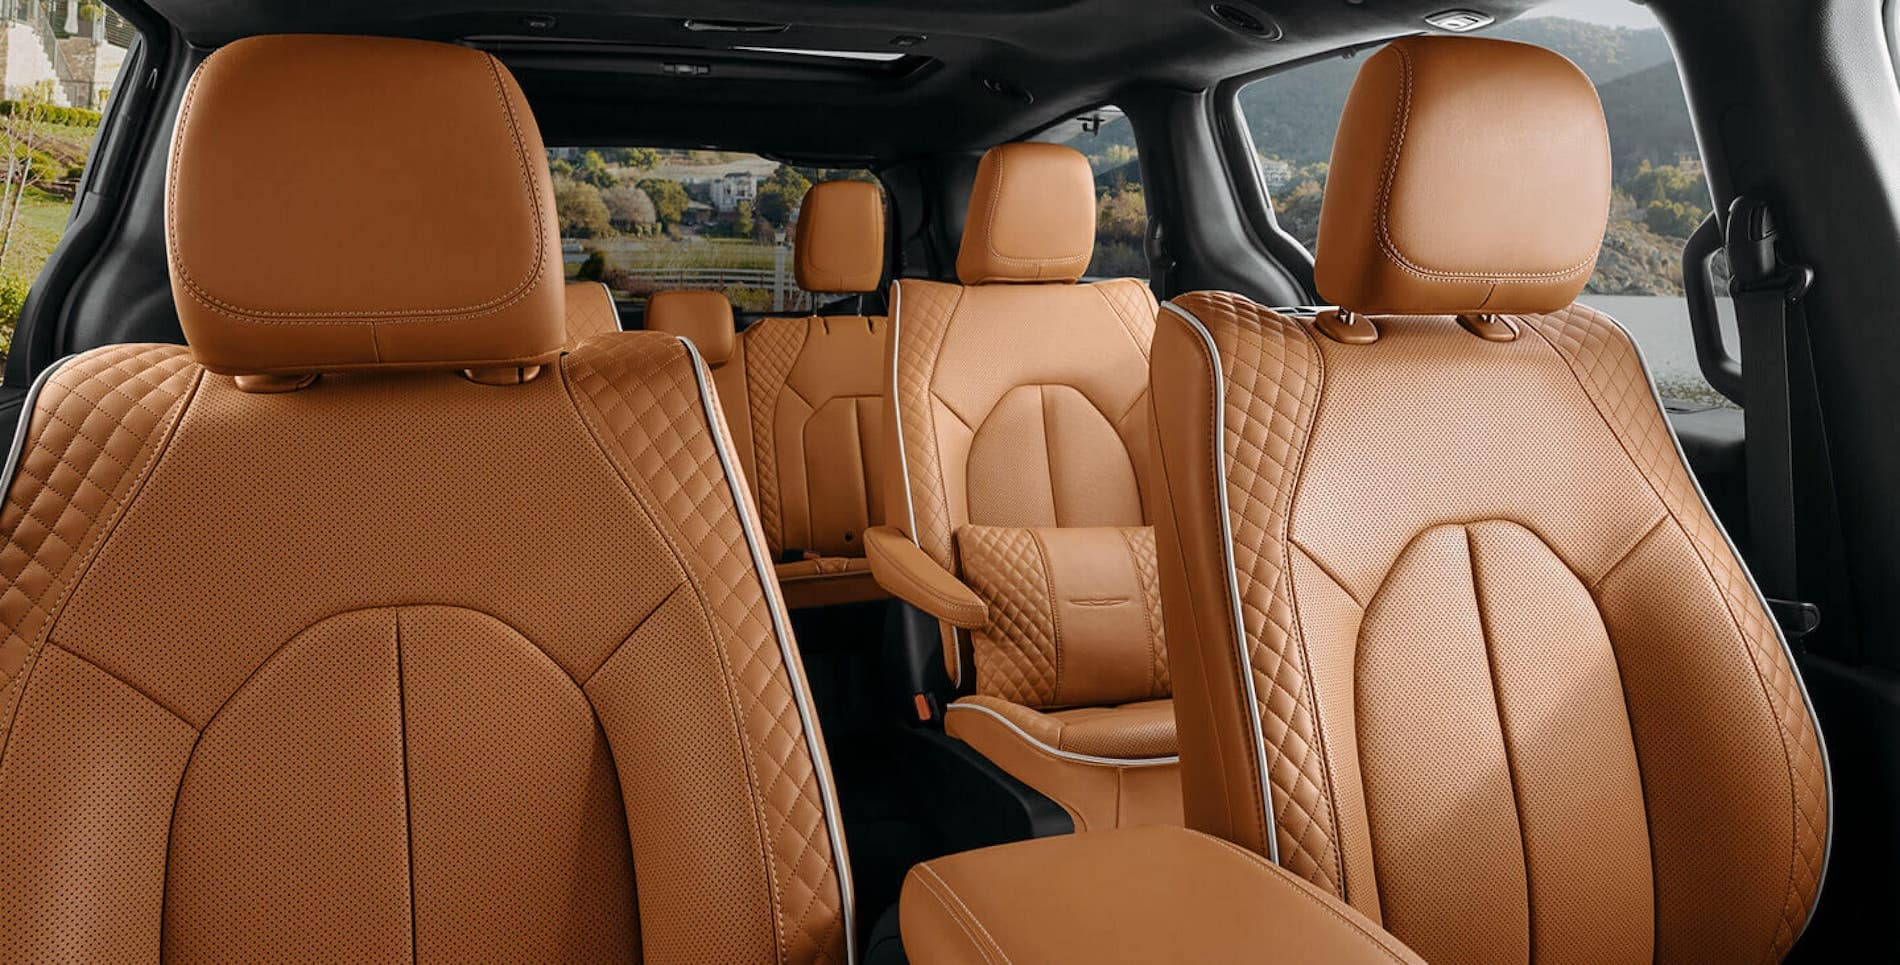 2021 Pacifica Brown leather interior in Salisbyry, MD